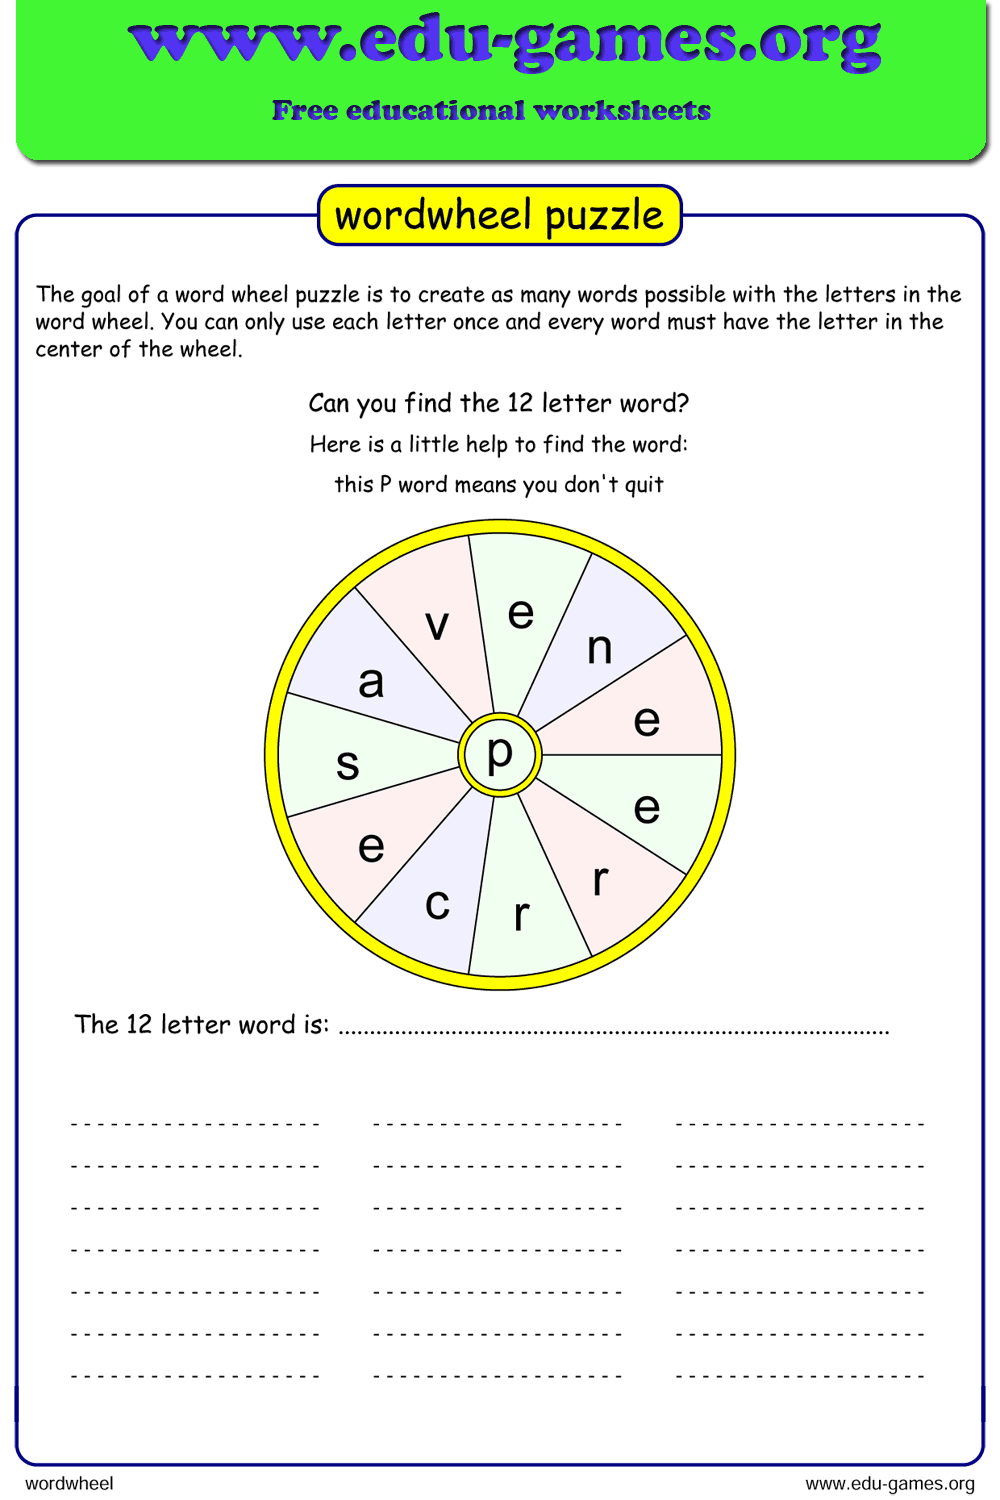 medium resolution of Word Wheel   Printable Puzzle Maker with Answers